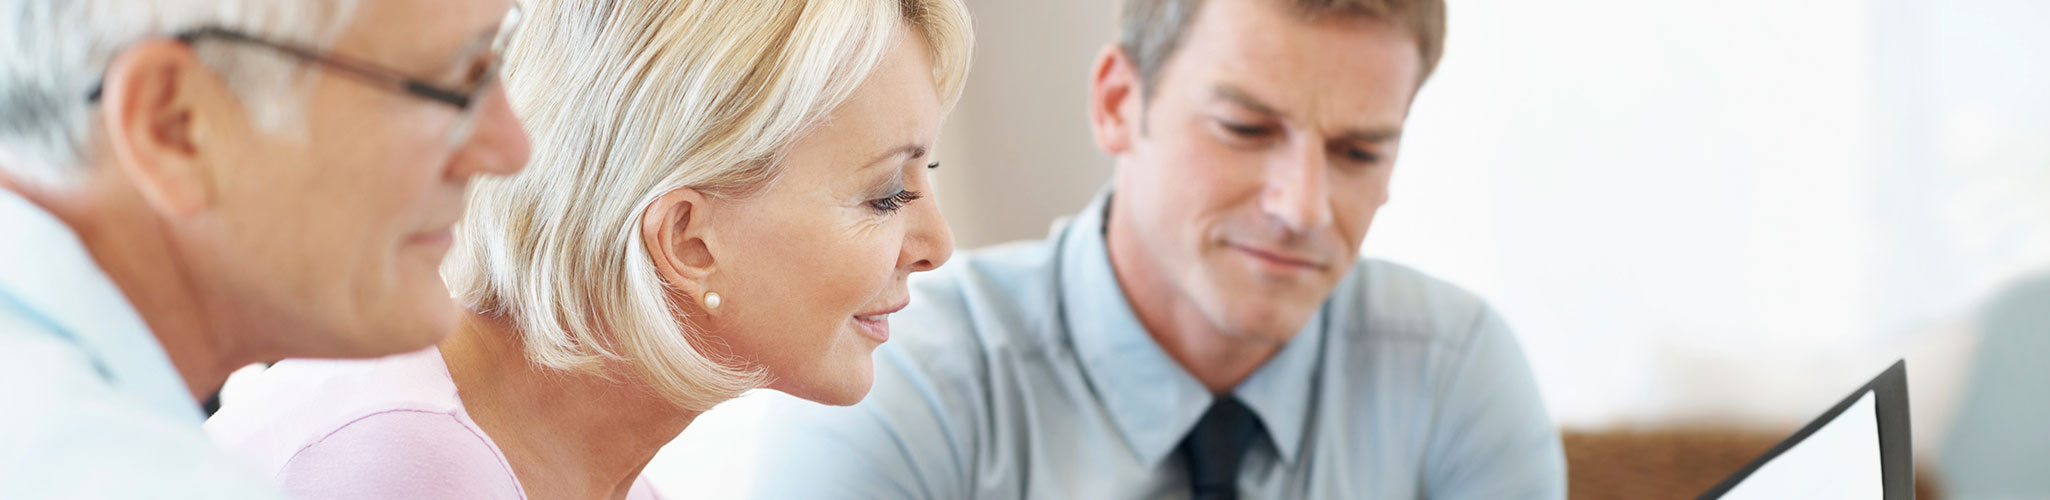 A couple discusses investment options with a financial advisor